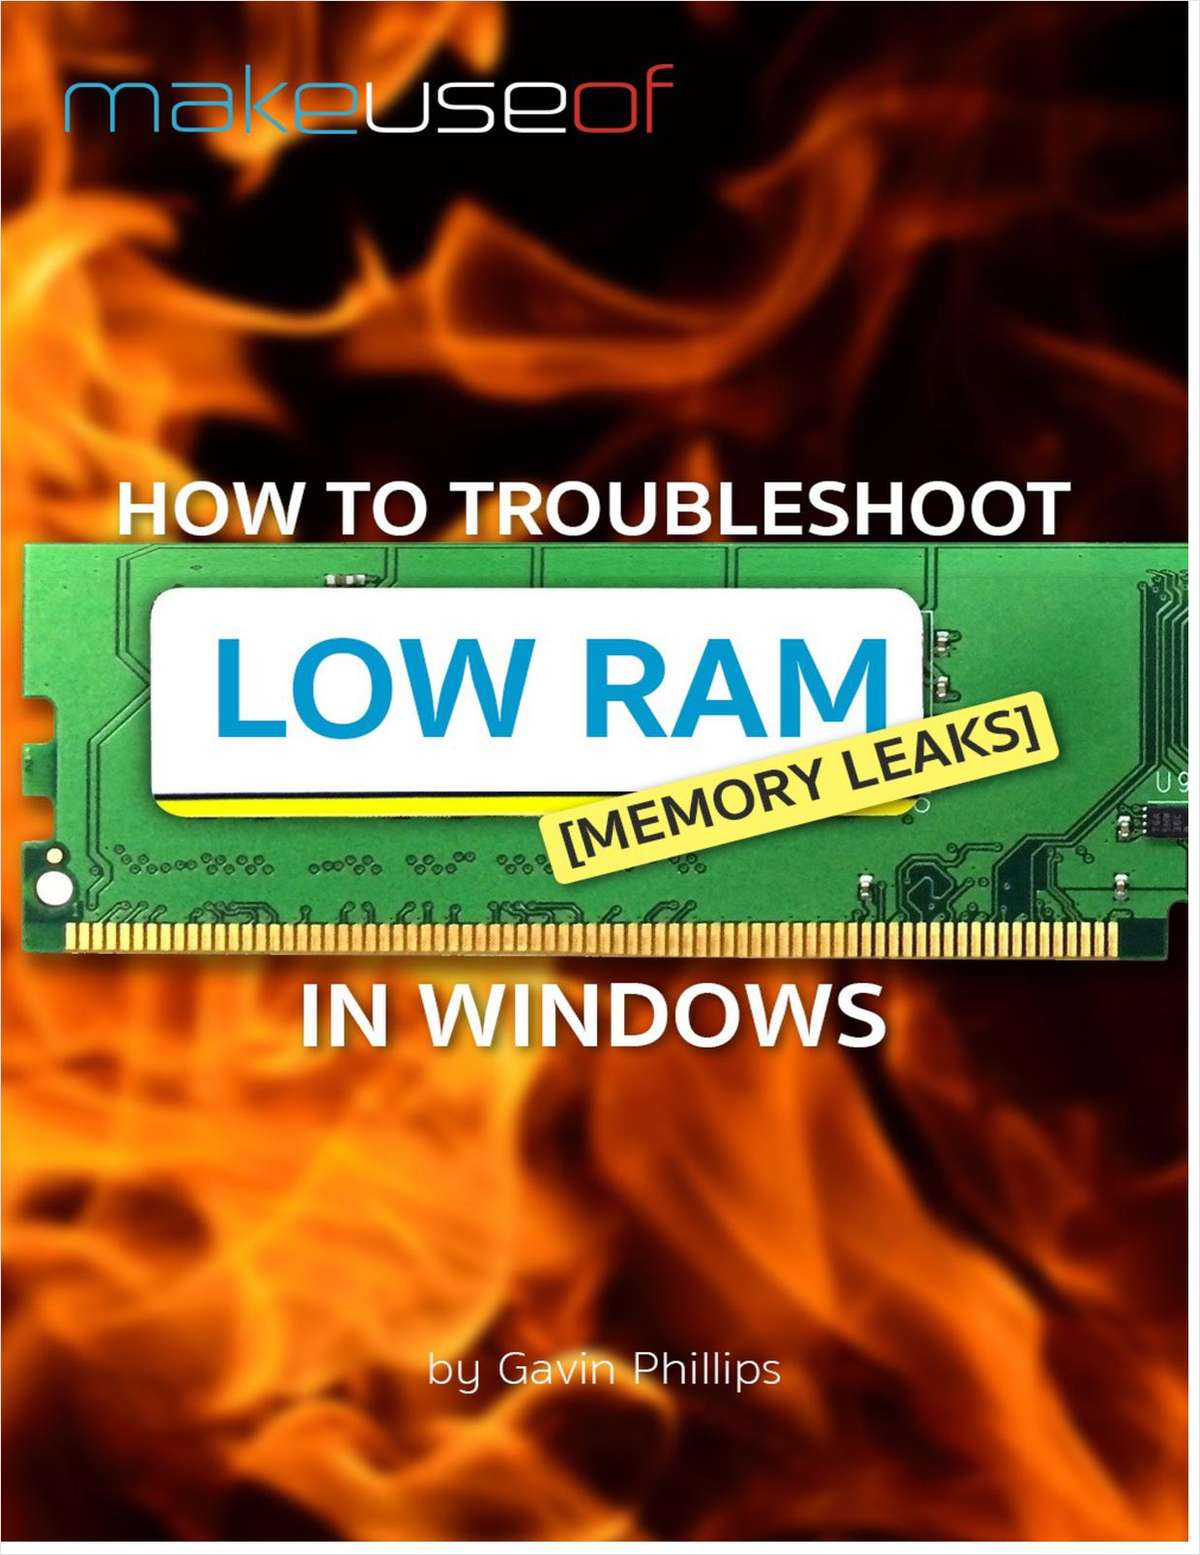 How to Troubleshoot Low RAM or Memory Leaks in Windows